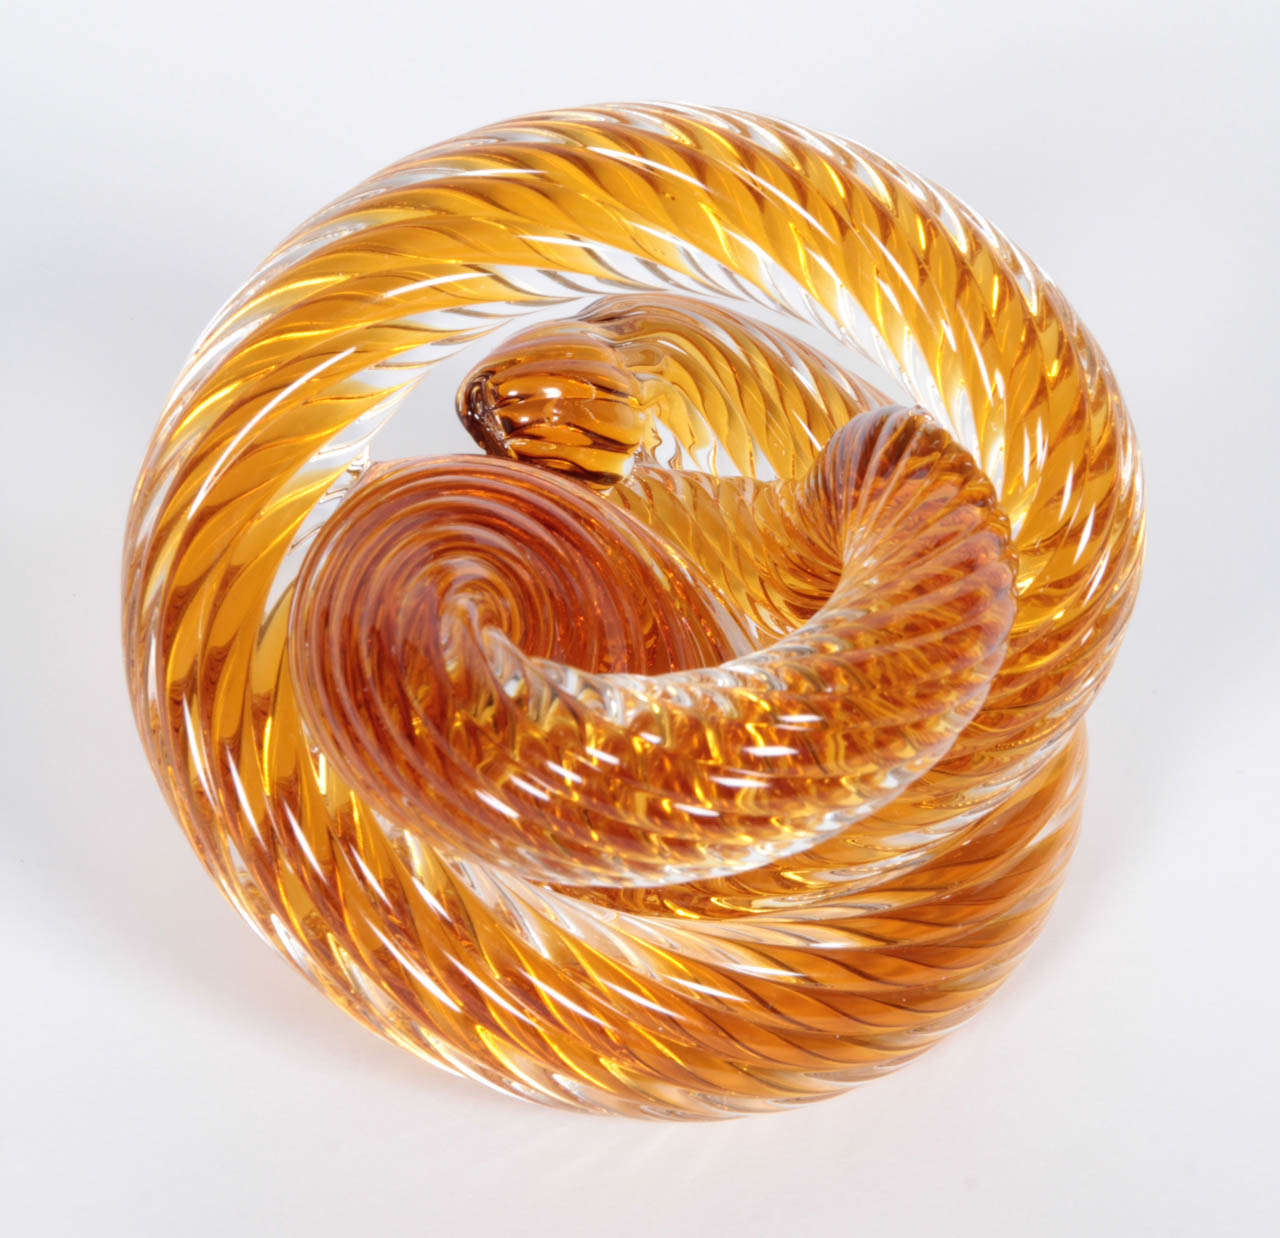 Tangerine-colored Murano glass coiled paperweight or small tabletop sculpture, Italy, circa 1970.